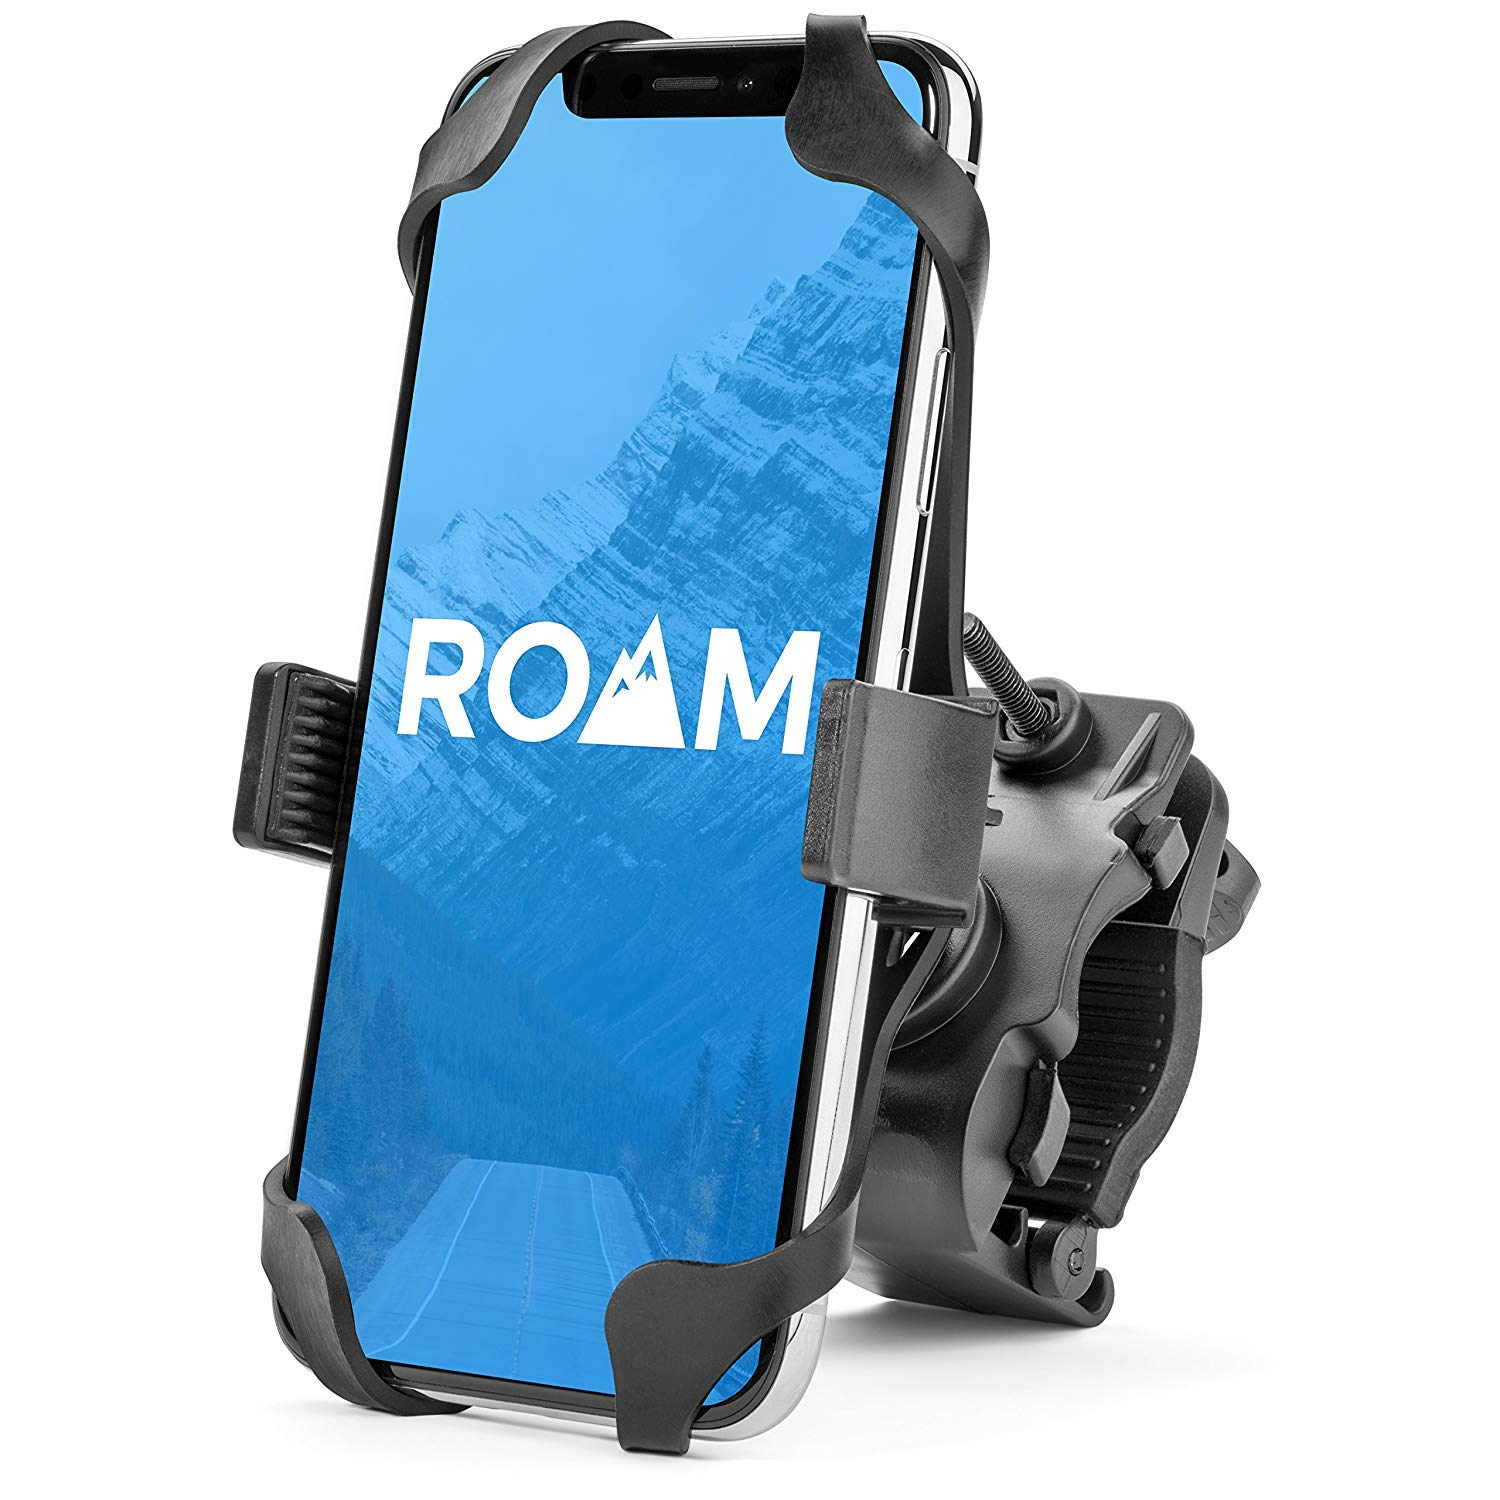 """Roam Universal Premium Bike Phone Mount for Motorcycle - Bike Handlebars, Adjustable, Fits iPhone 12, 12Pro 11, X, XR, 8 